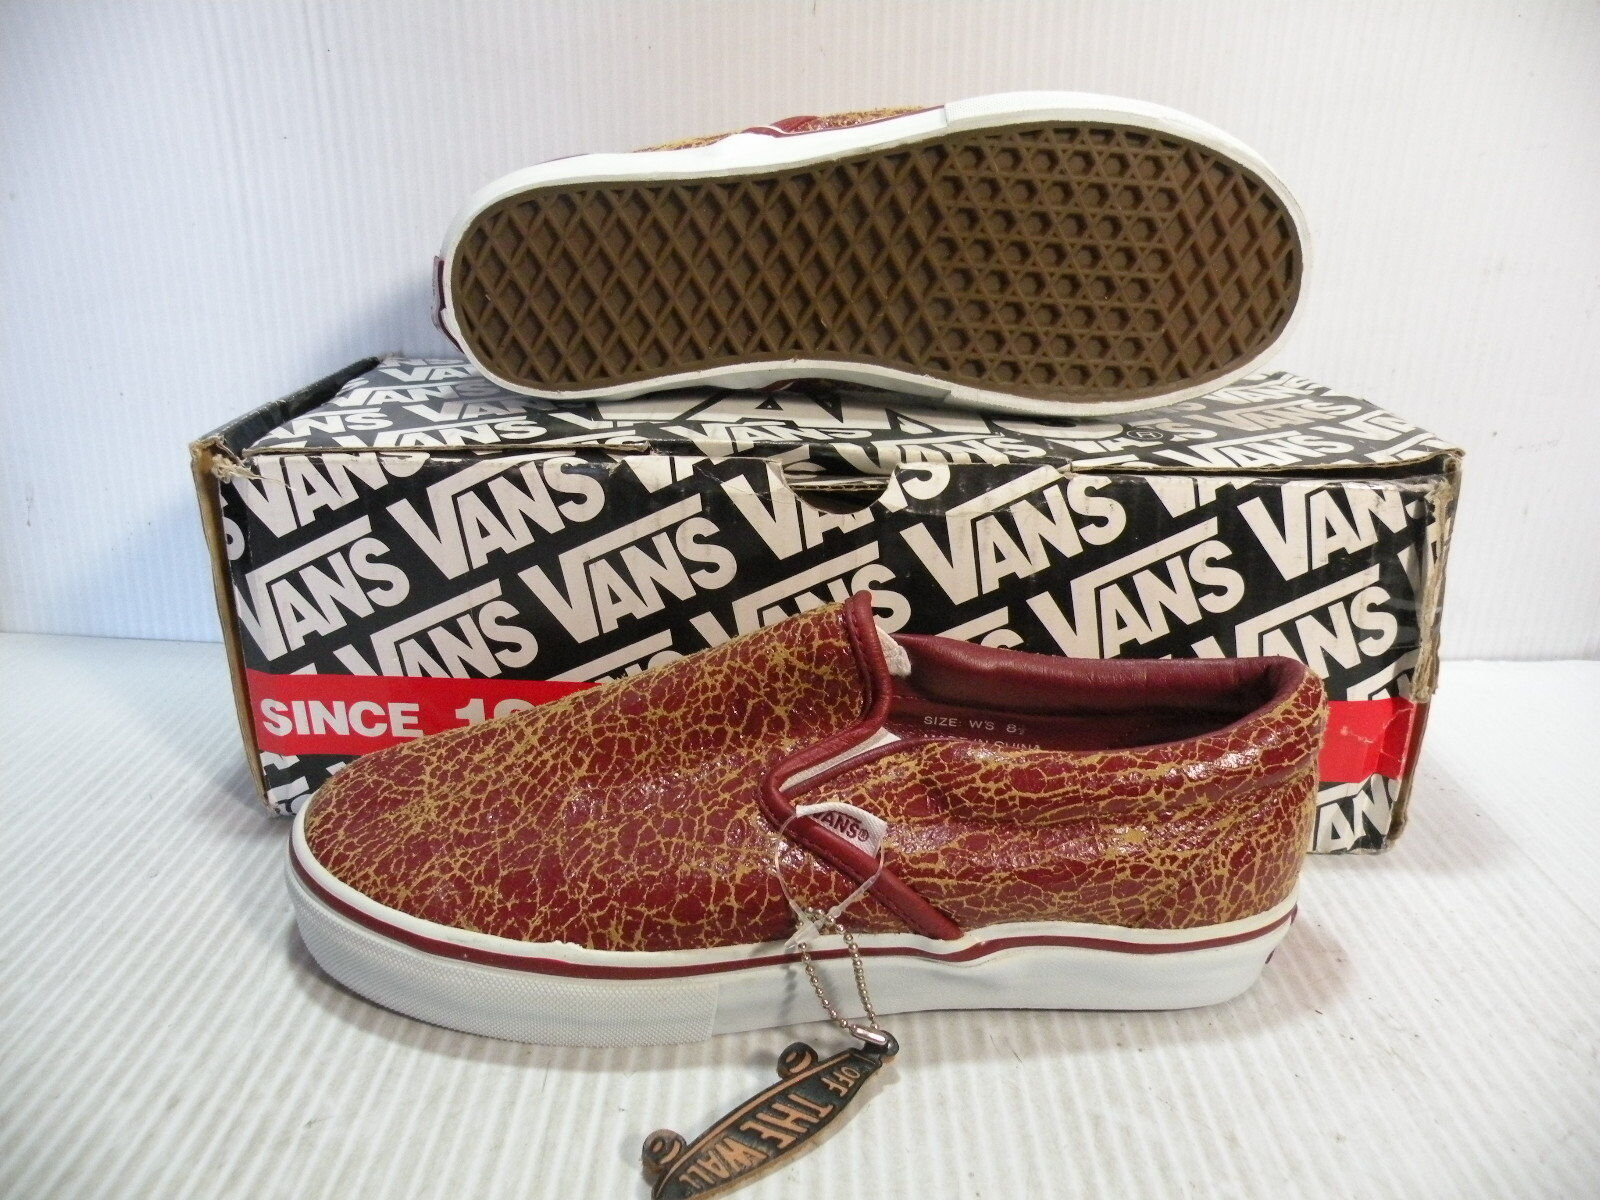 VANS CLASSIC SLIP-ON LEATHER WOMEN SHOES BURGUNDY TAN 785344 SIZE 8.5 NEW